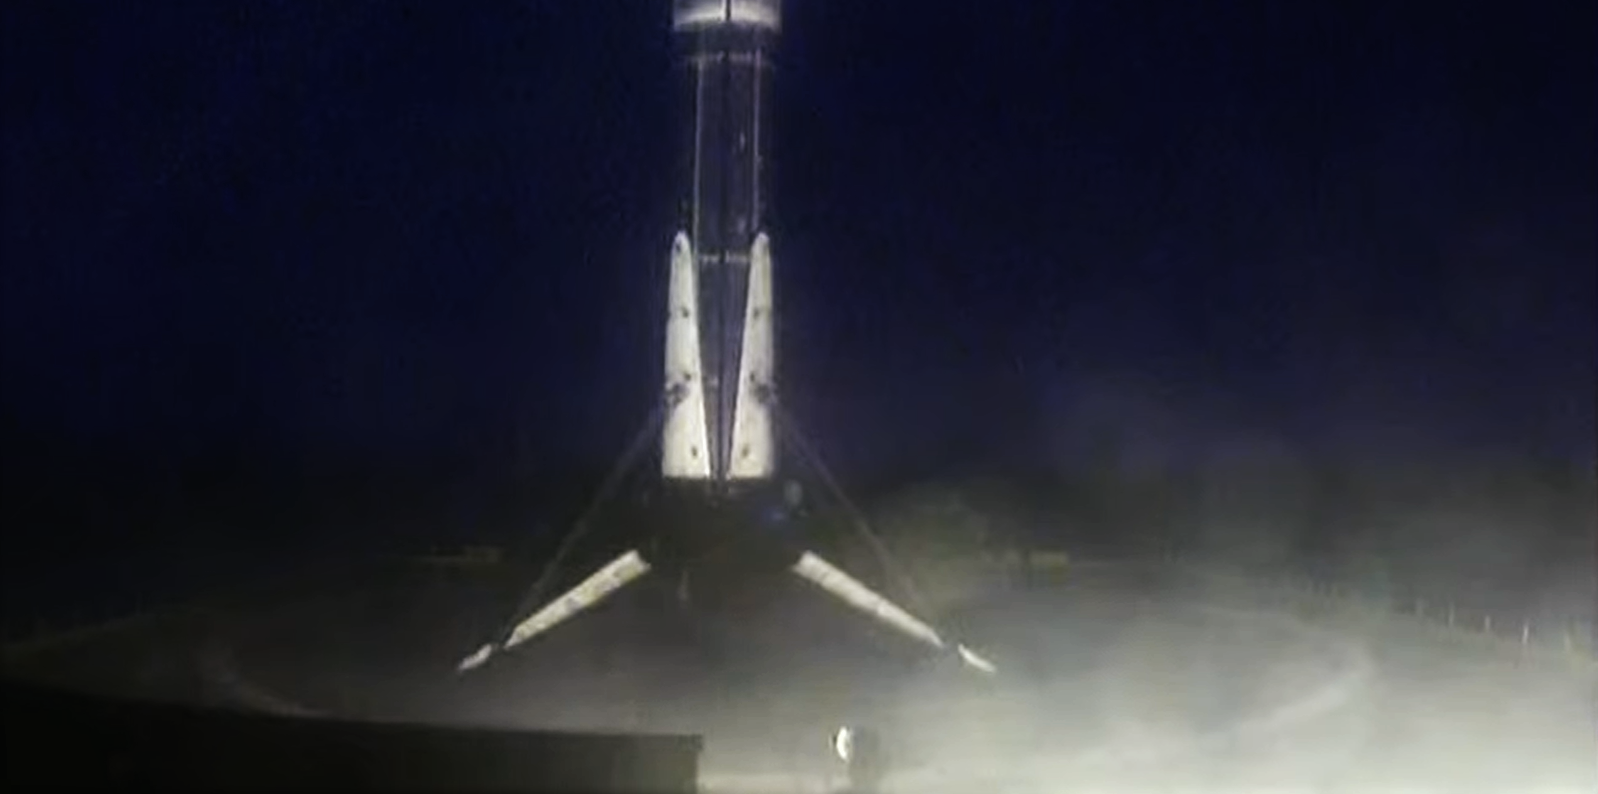 Starlink-15 Falcon 9 B1049 LC-40 112420 webcast (SpaceX) OCISLY 1